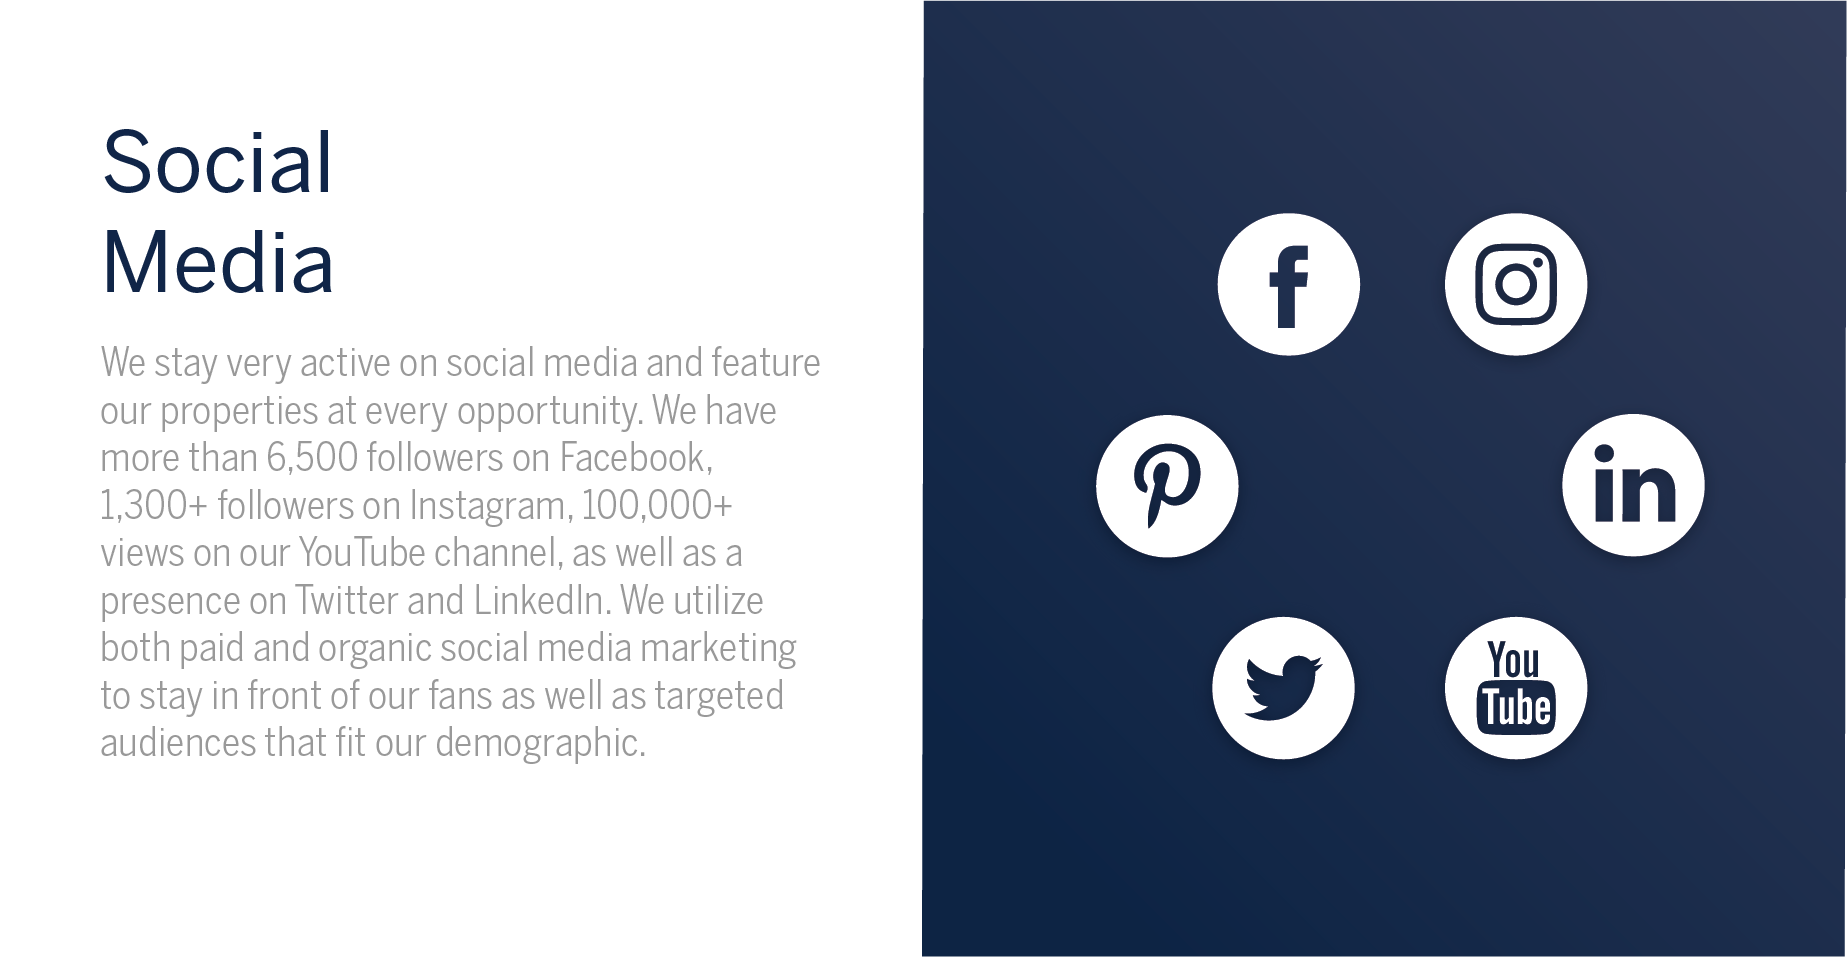 Social Media - Amanda Howard Sotheby's International Realty stays very active on social media and feature our properties at every opportunity. We have more than 6,500 followers on Facebook, and 1,300+ followers on Instagram, as well as a presence on Twitter and LinkedIn. In the last two years, we have had 100,000+ views on our YouTube channel. We utilize both paid and organic social media marketing to stay in front of our fans as well as targeted audiences that fit our demographic.